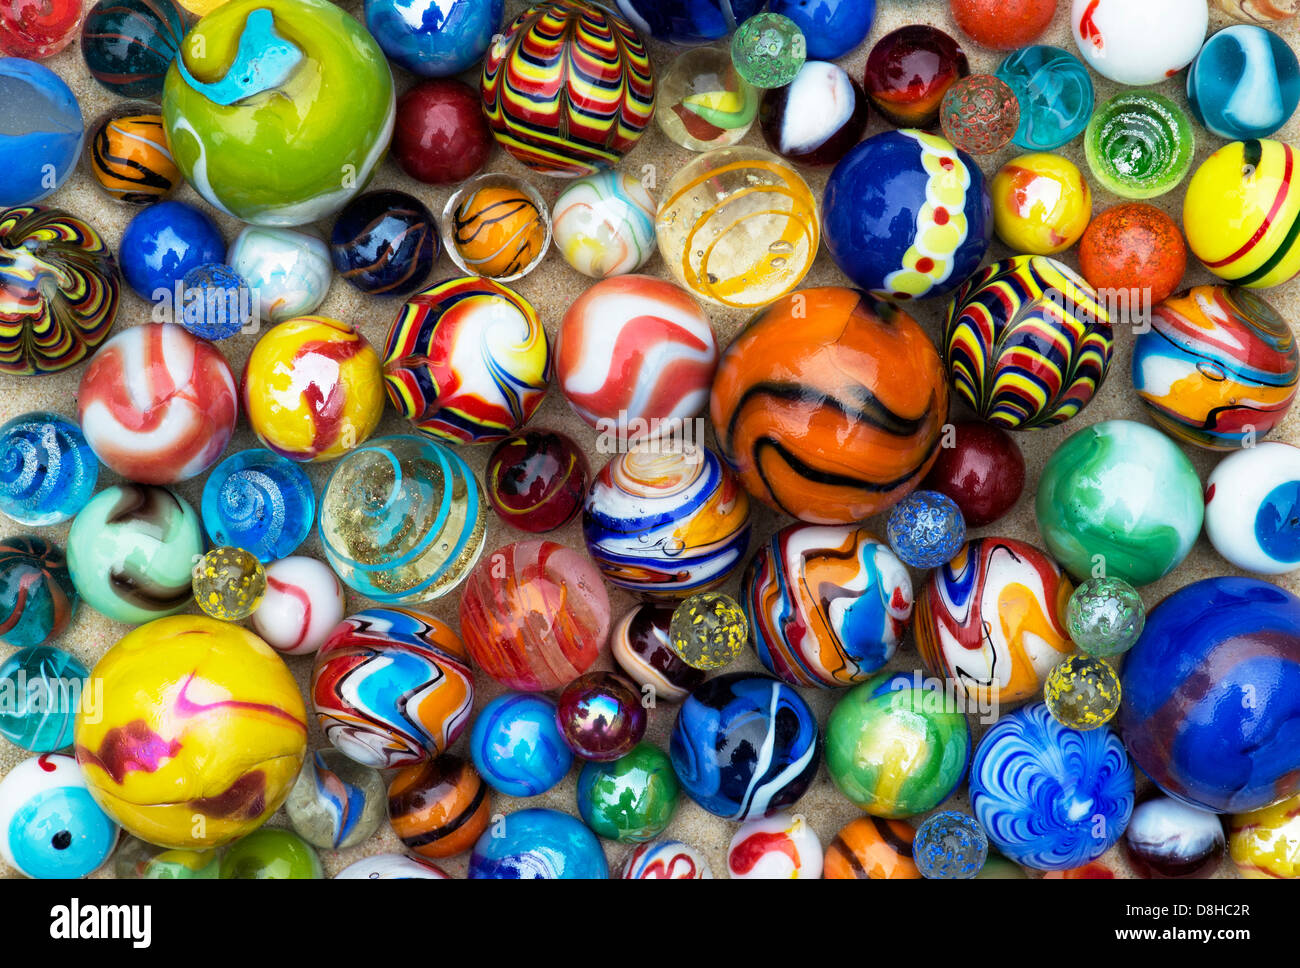 Colourful marbles on sand pattern - Stock Image